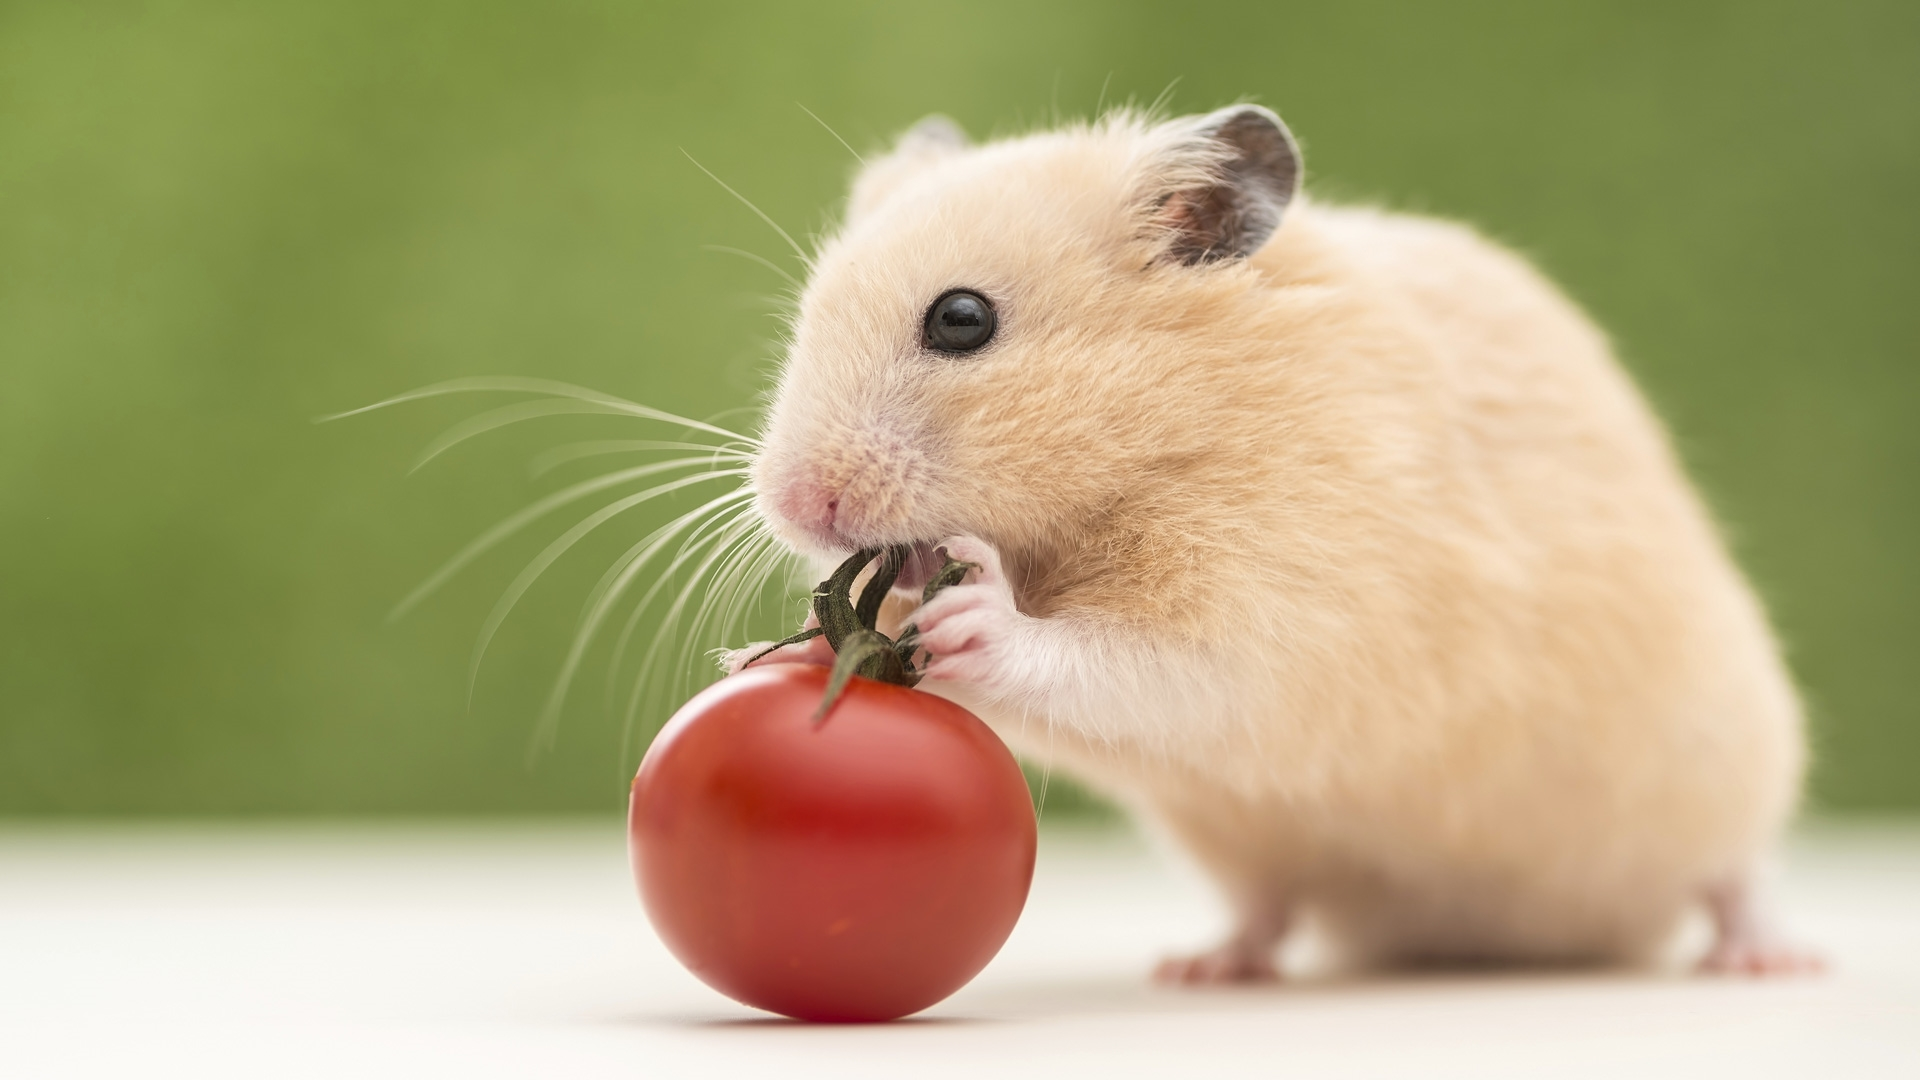 hamster wallpapers for iphone